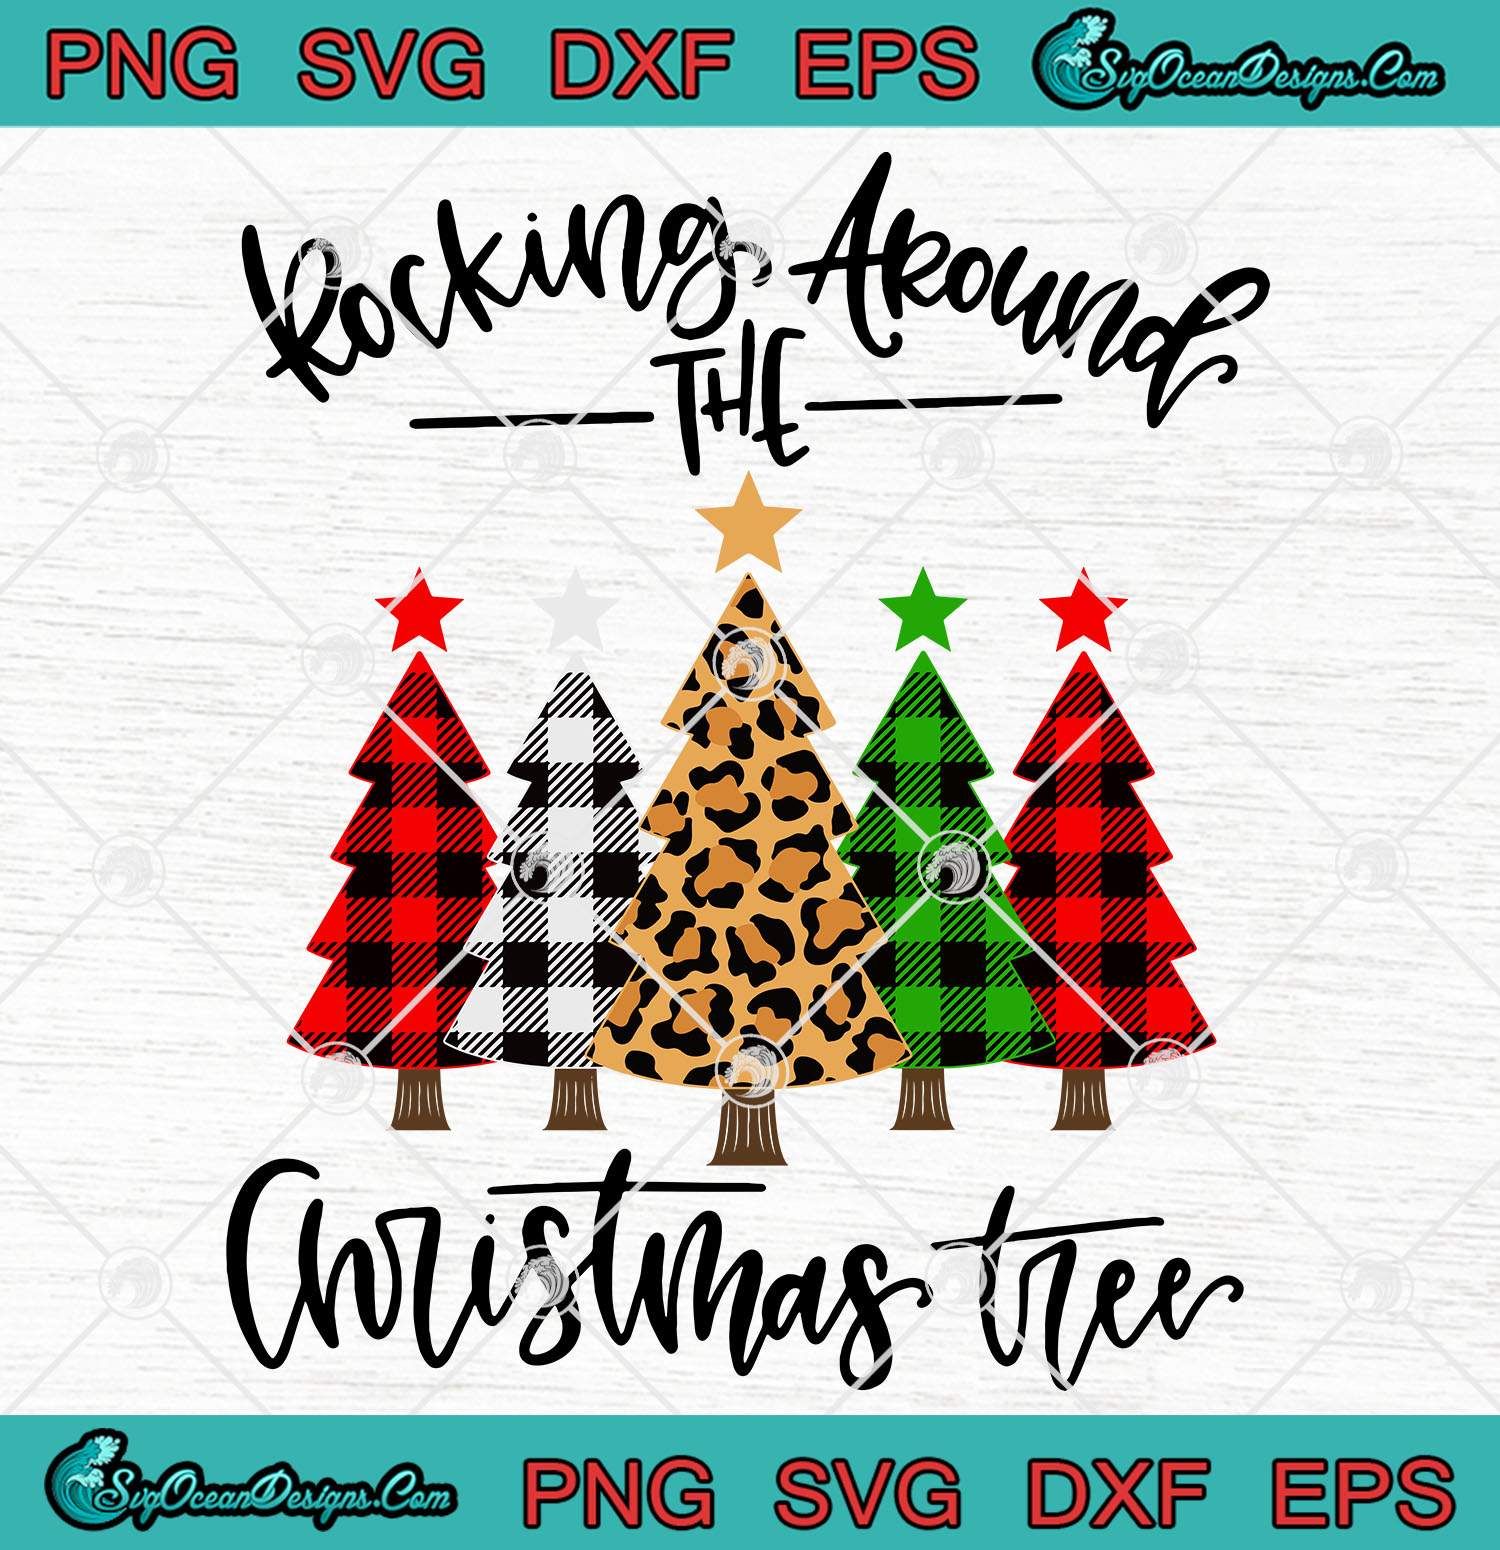 Rocking Around The Christmas Tree Svg Png Eps Dxf Cricut File Silhouette Svg Designs Digital Download